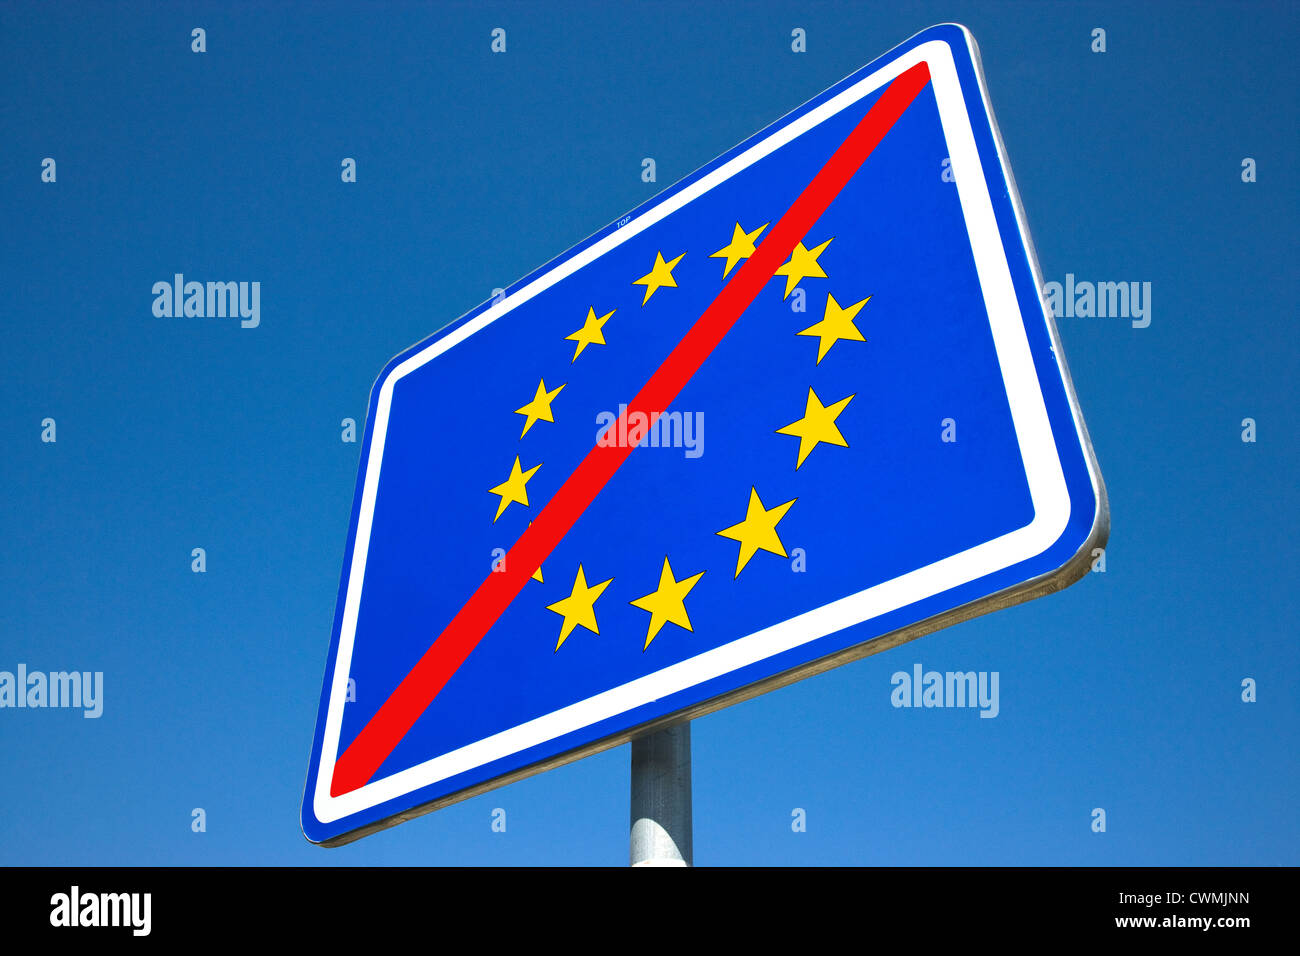 European Union sign - znak Evropske unie - Stock Image